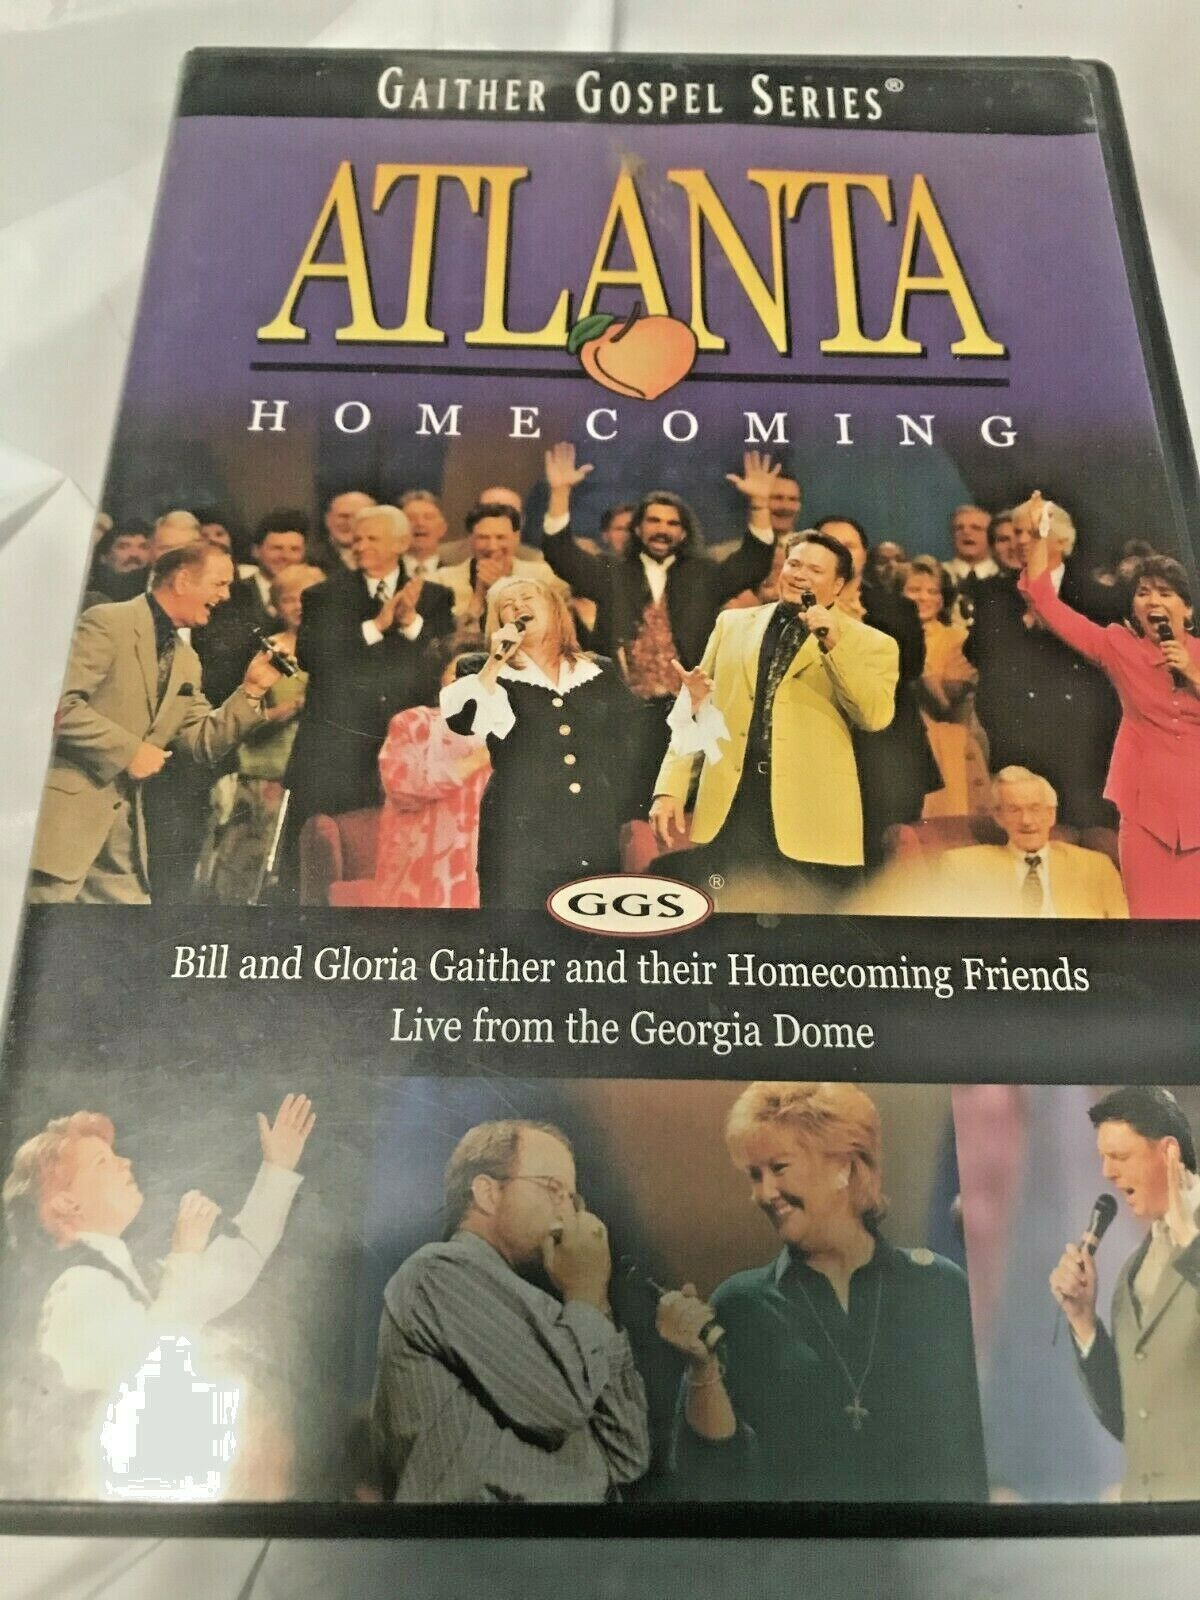 Gaither Gospel Series - Atlanta Homecoming DVD - Live From The Georgia Dome - $4.99